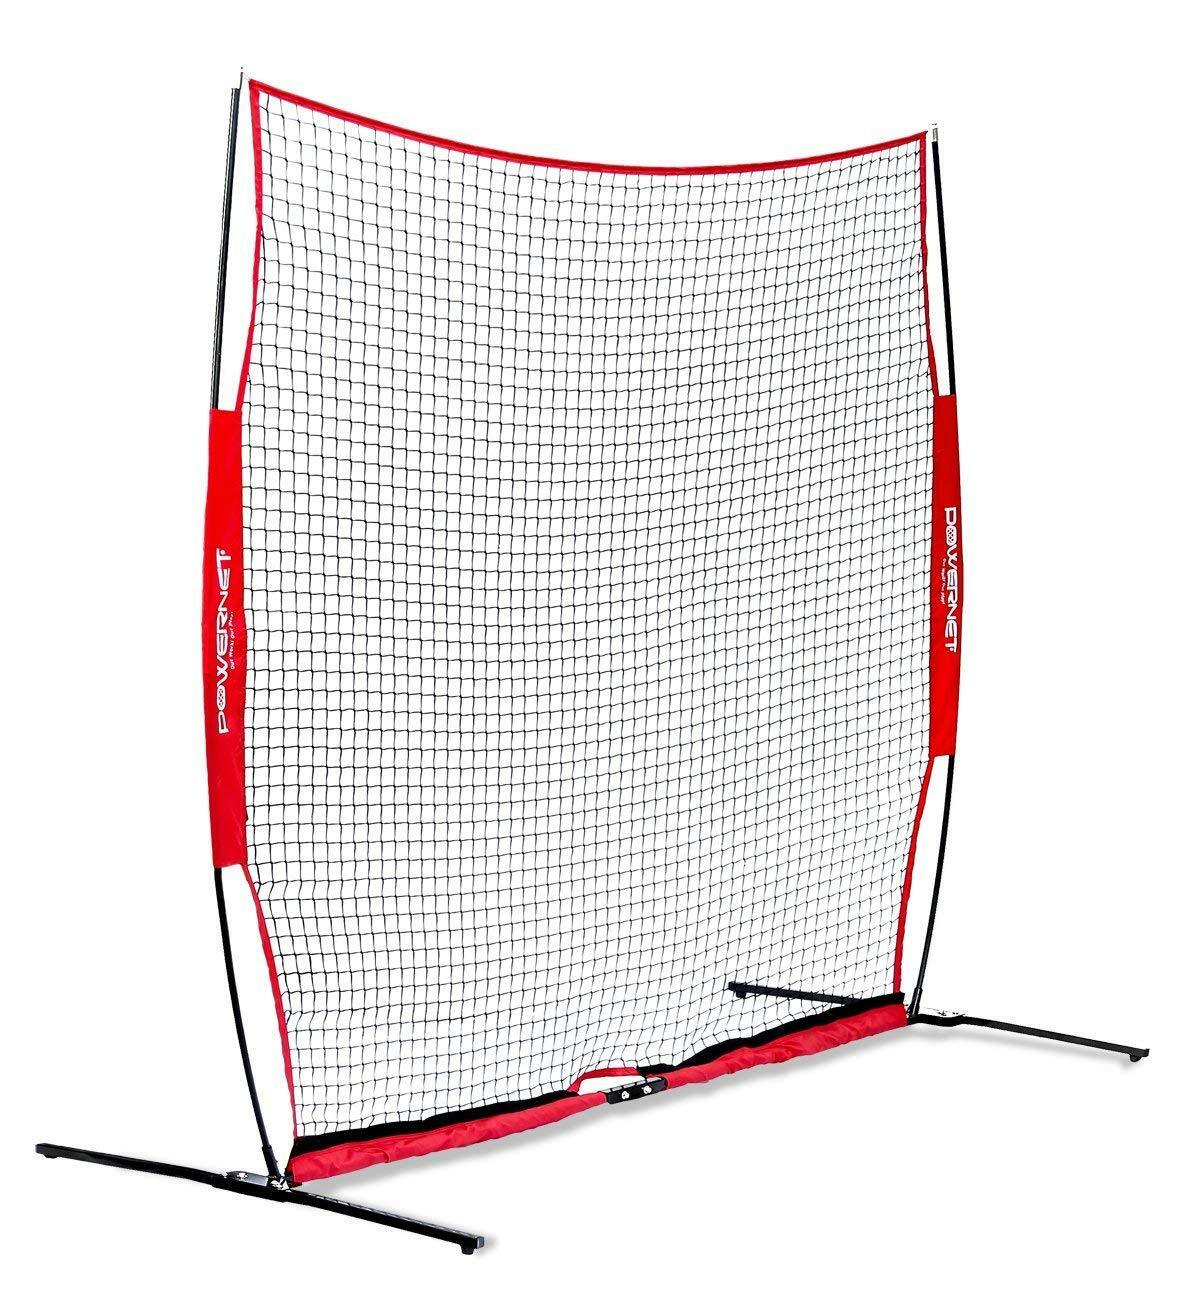 PowerNet Portable Barrier Net 8' x 8' for for 8' Baseball Lacrosse 64 sqft Protection b9d2f7